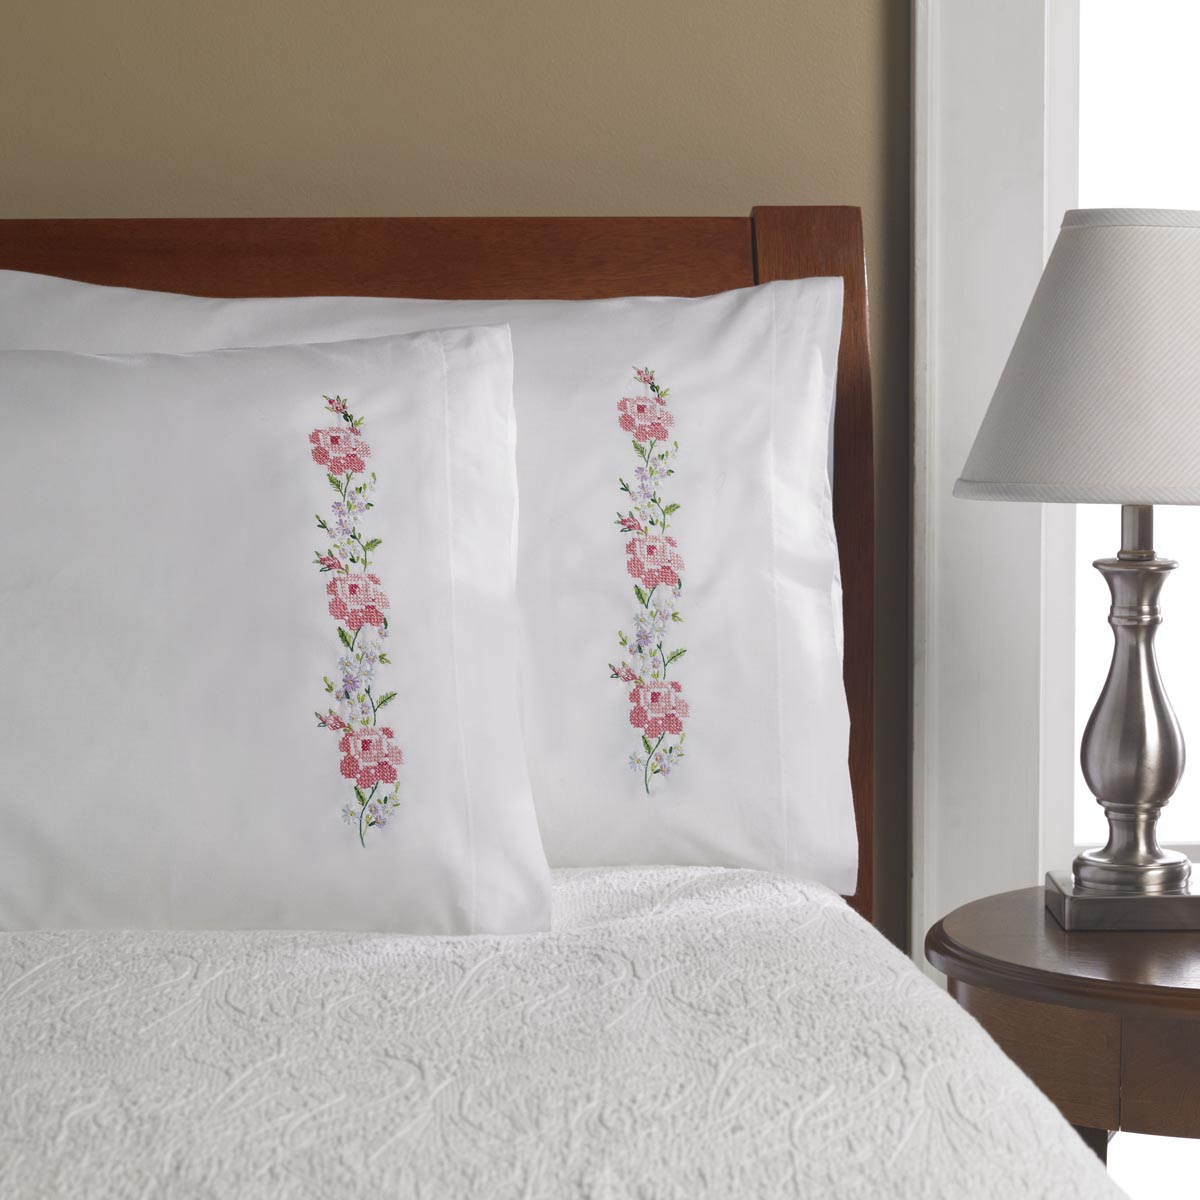 Bucilla ® Stamped Cross Stitch & Embroidery - Pillowcase Pairs - Sampler Roses